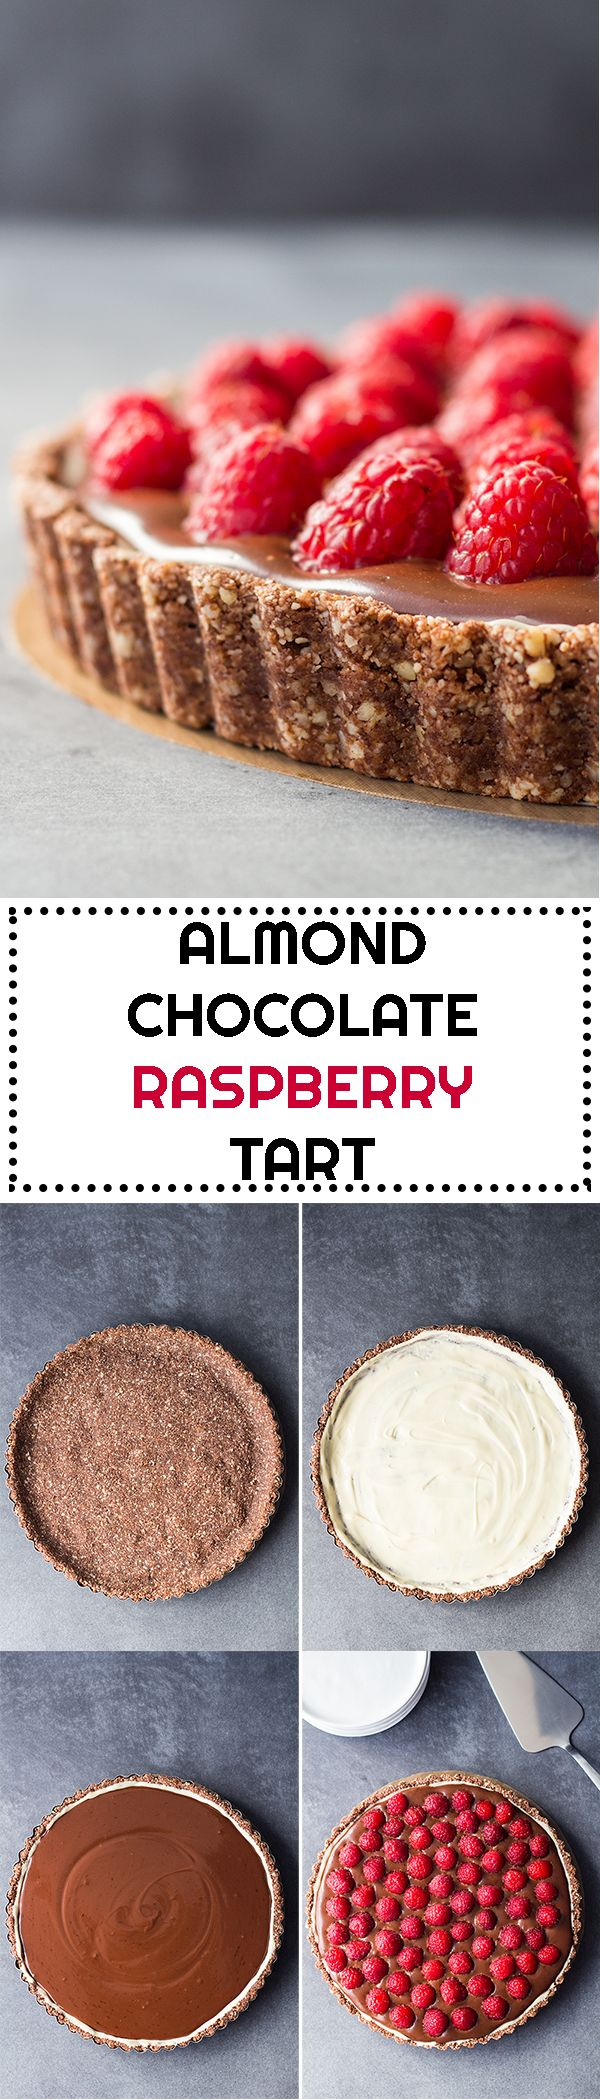 A gluten-free, refined-sugar-free, delicious Almond Chocolate Raspberry Tart made with a vegan almond crust and vegan dark chocolate cream.